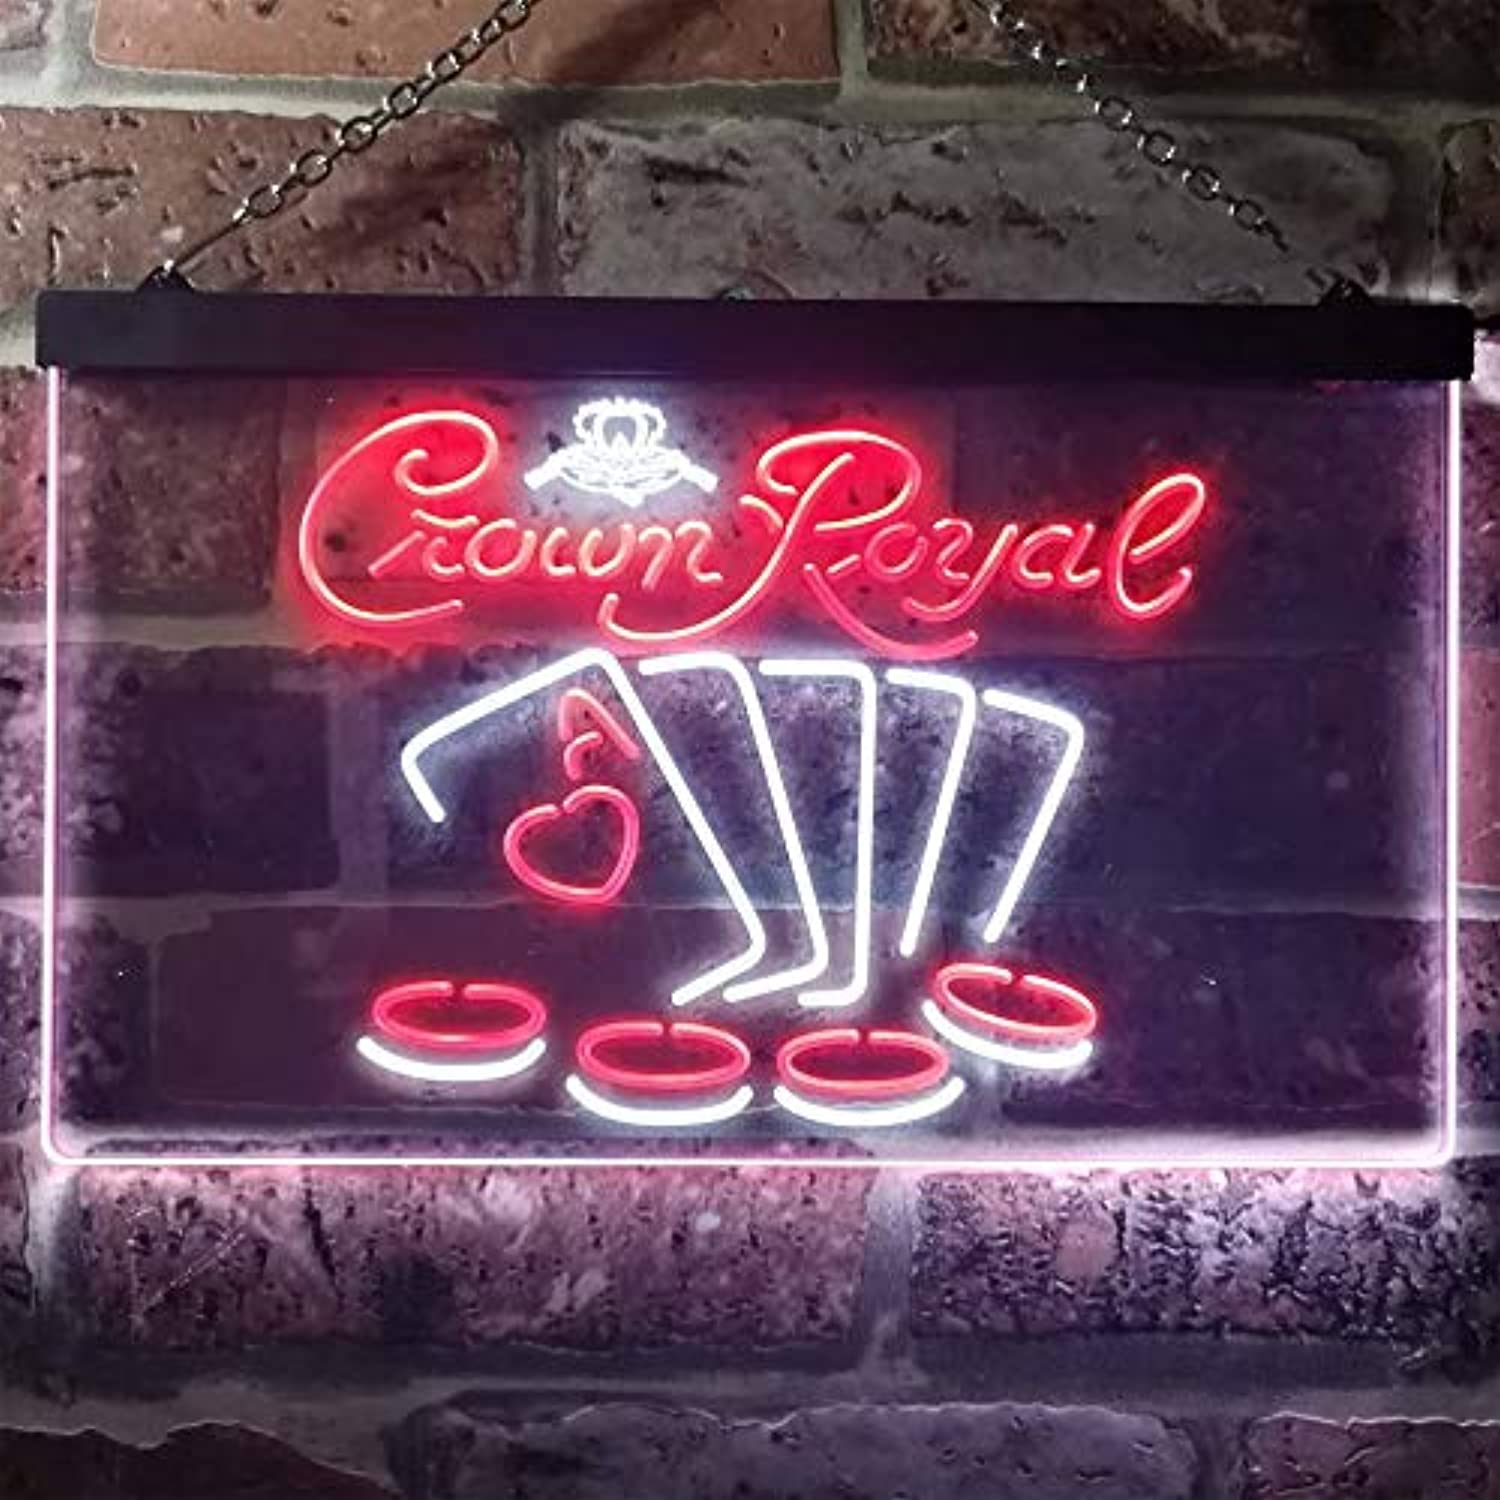 Zusme Crown Royal Casino Poker Novelty LED Neon Sign Weiß + rot W40cm x H30cm